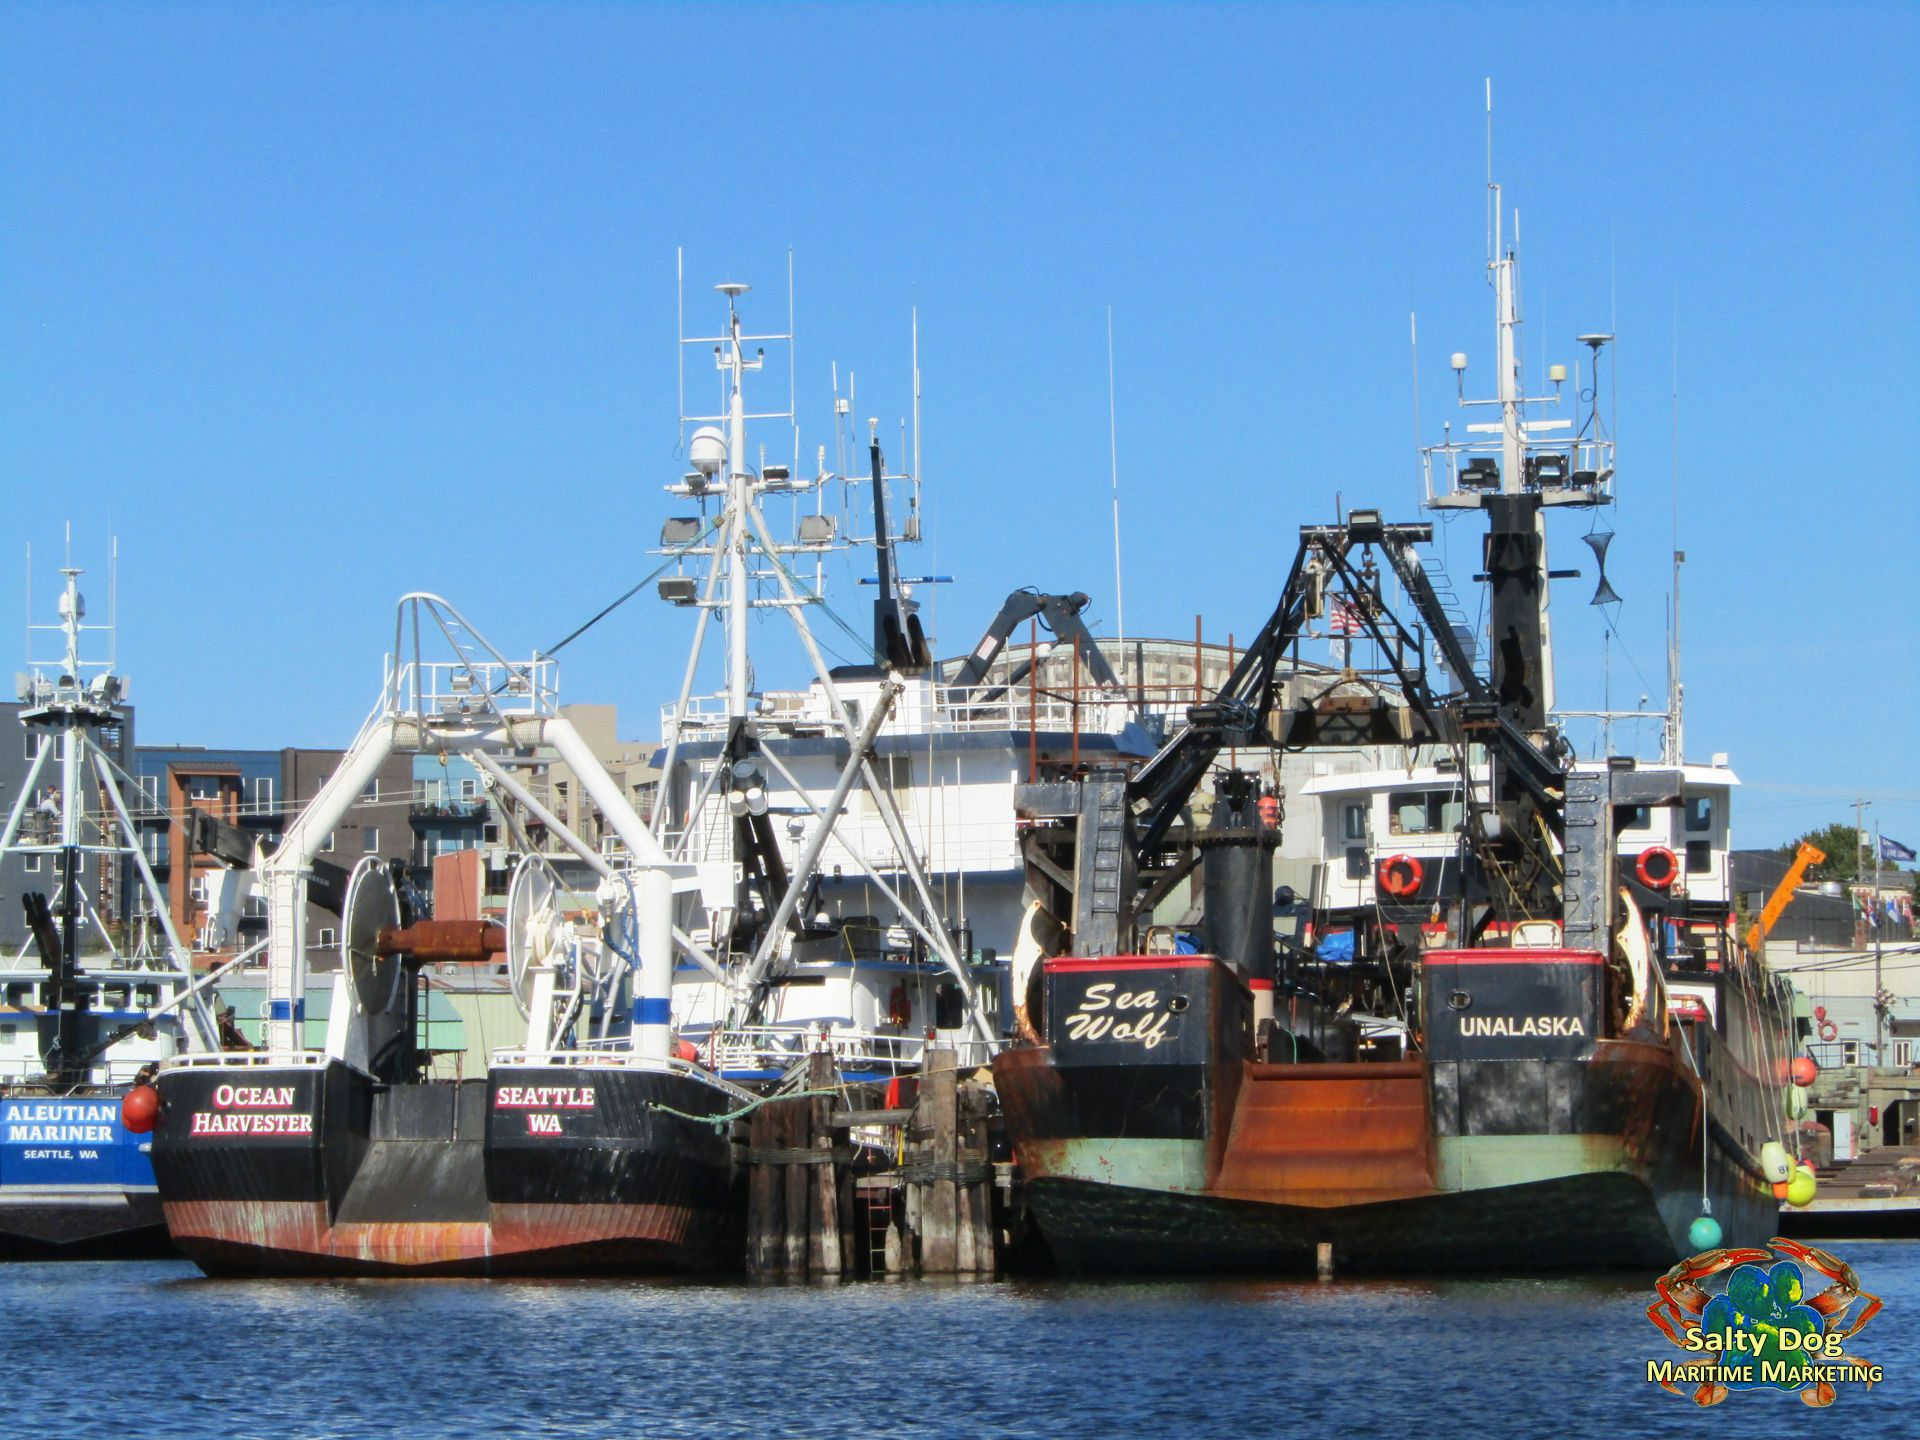 Pacific fishermen shipyard salty dog boating news for Commercial fishing jobs